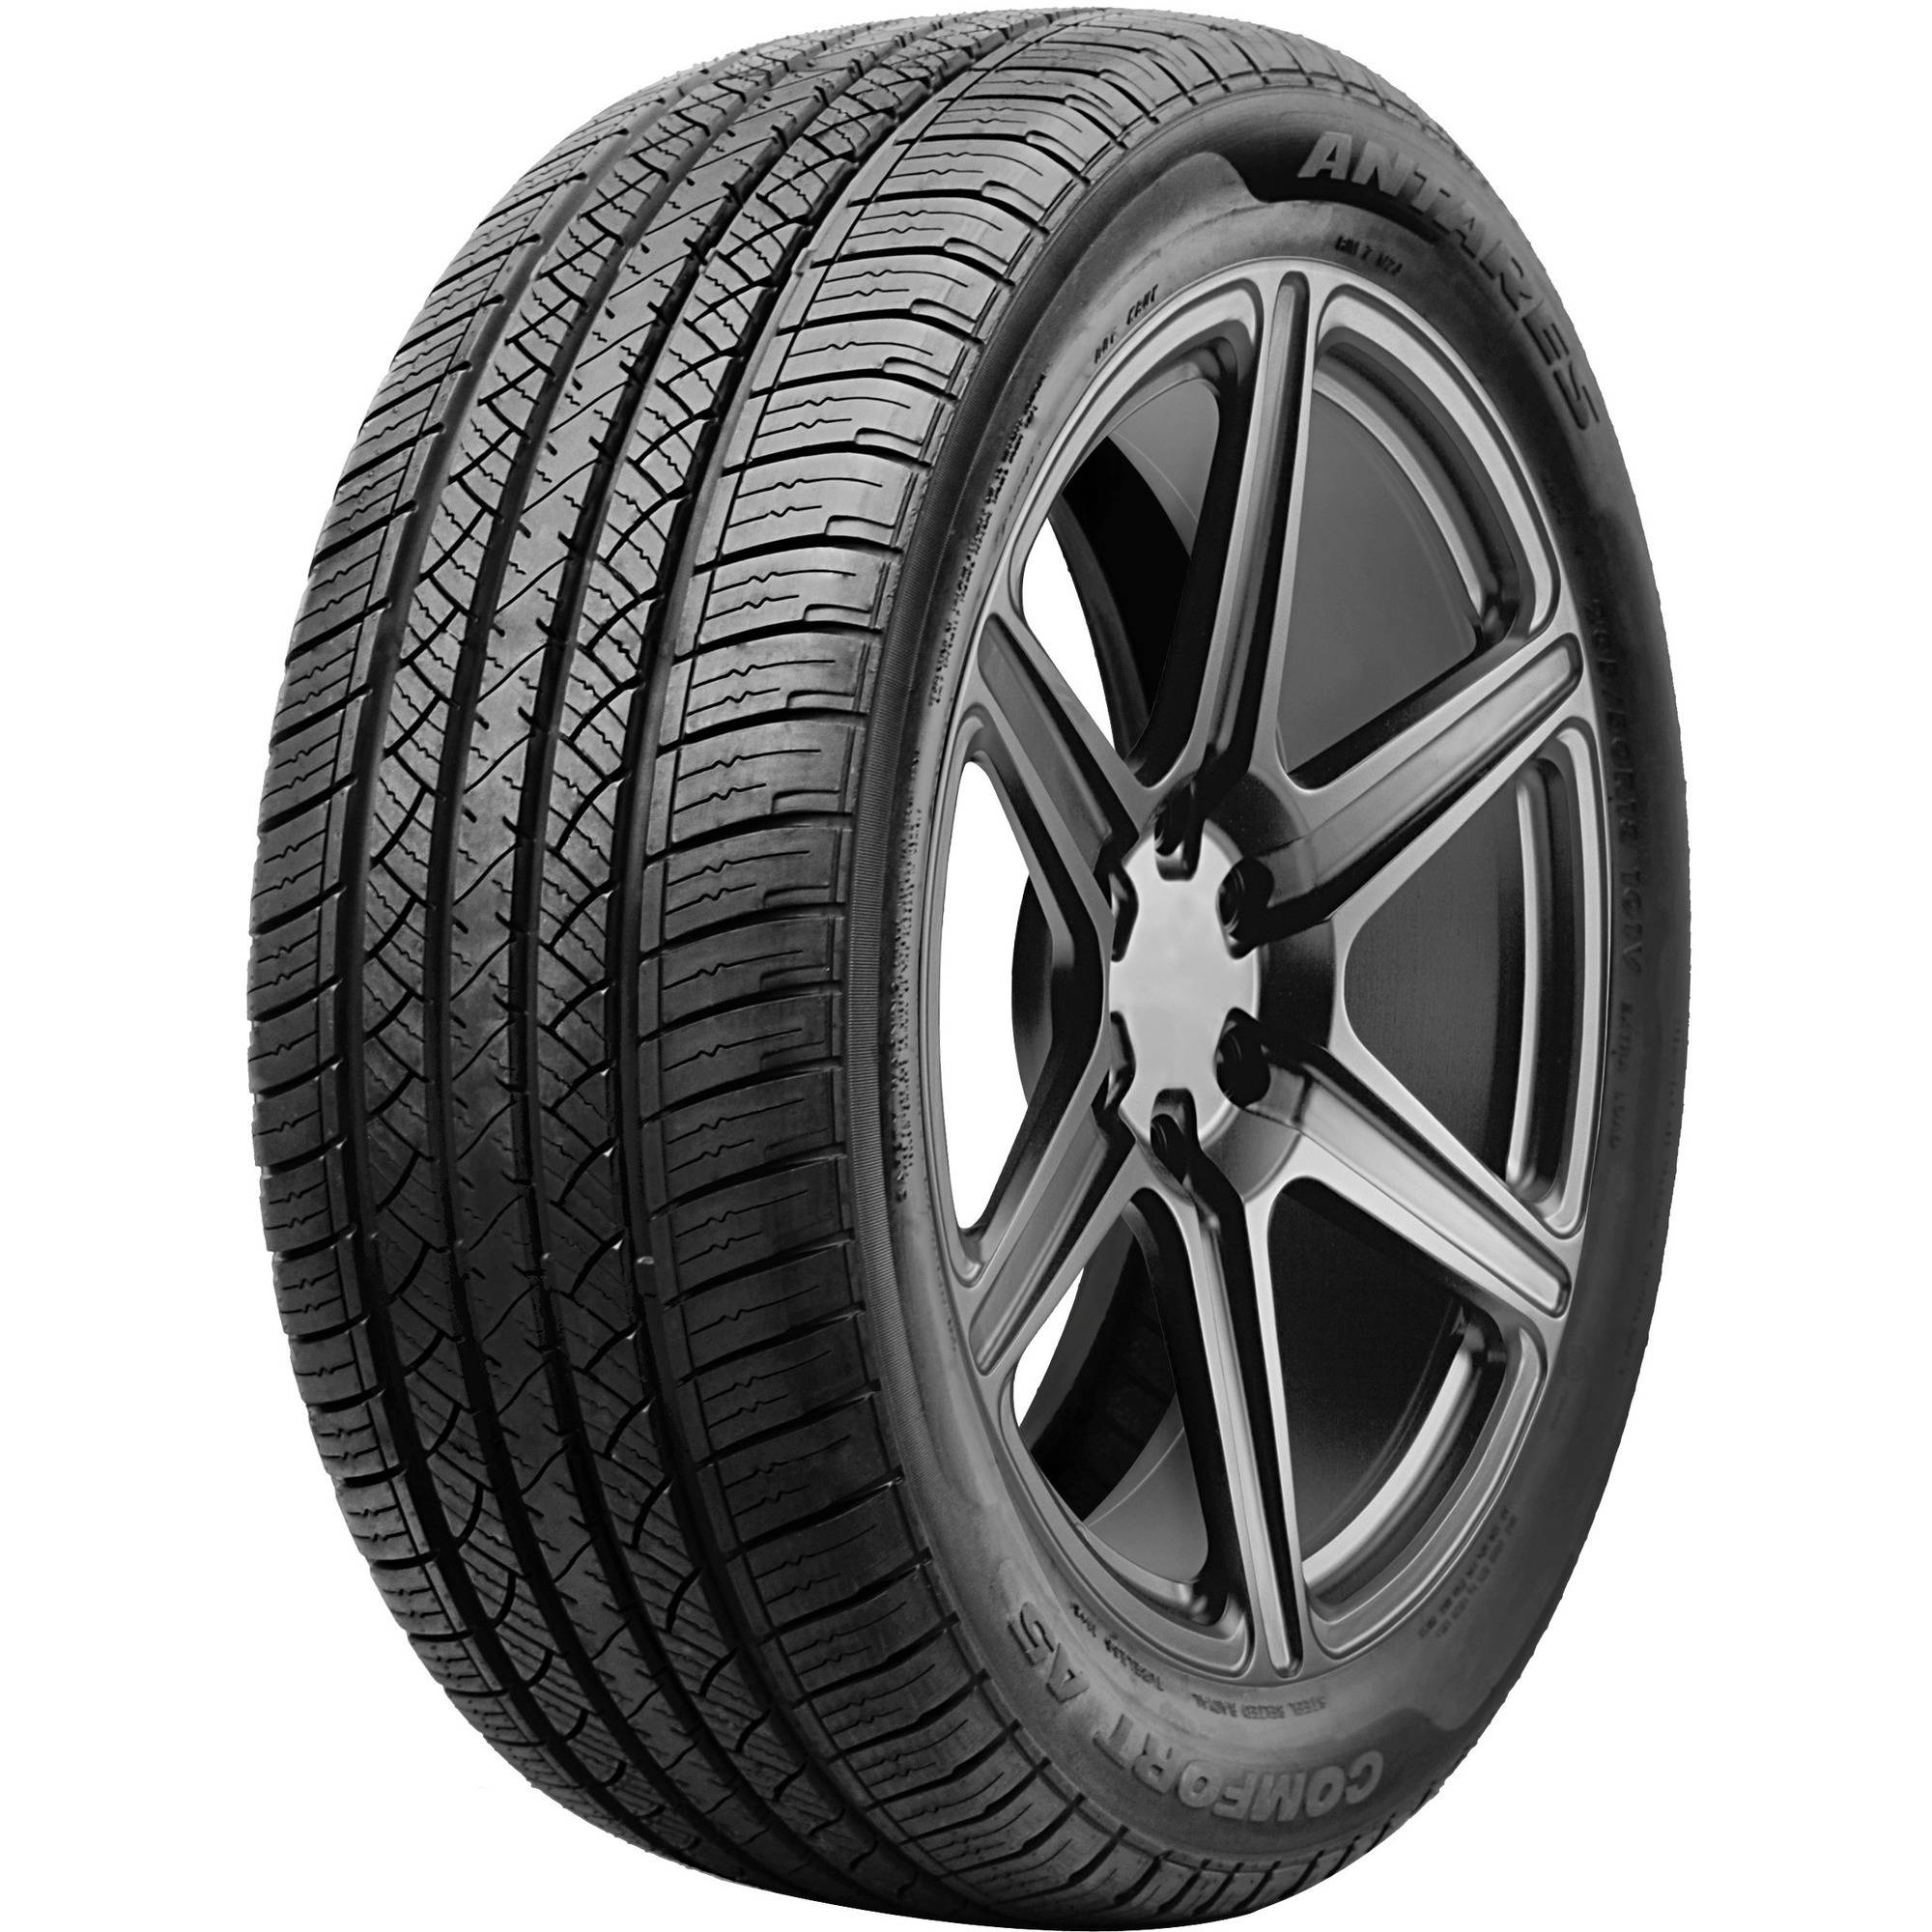 Antares Comfort A5 235/70R16 106H Tire